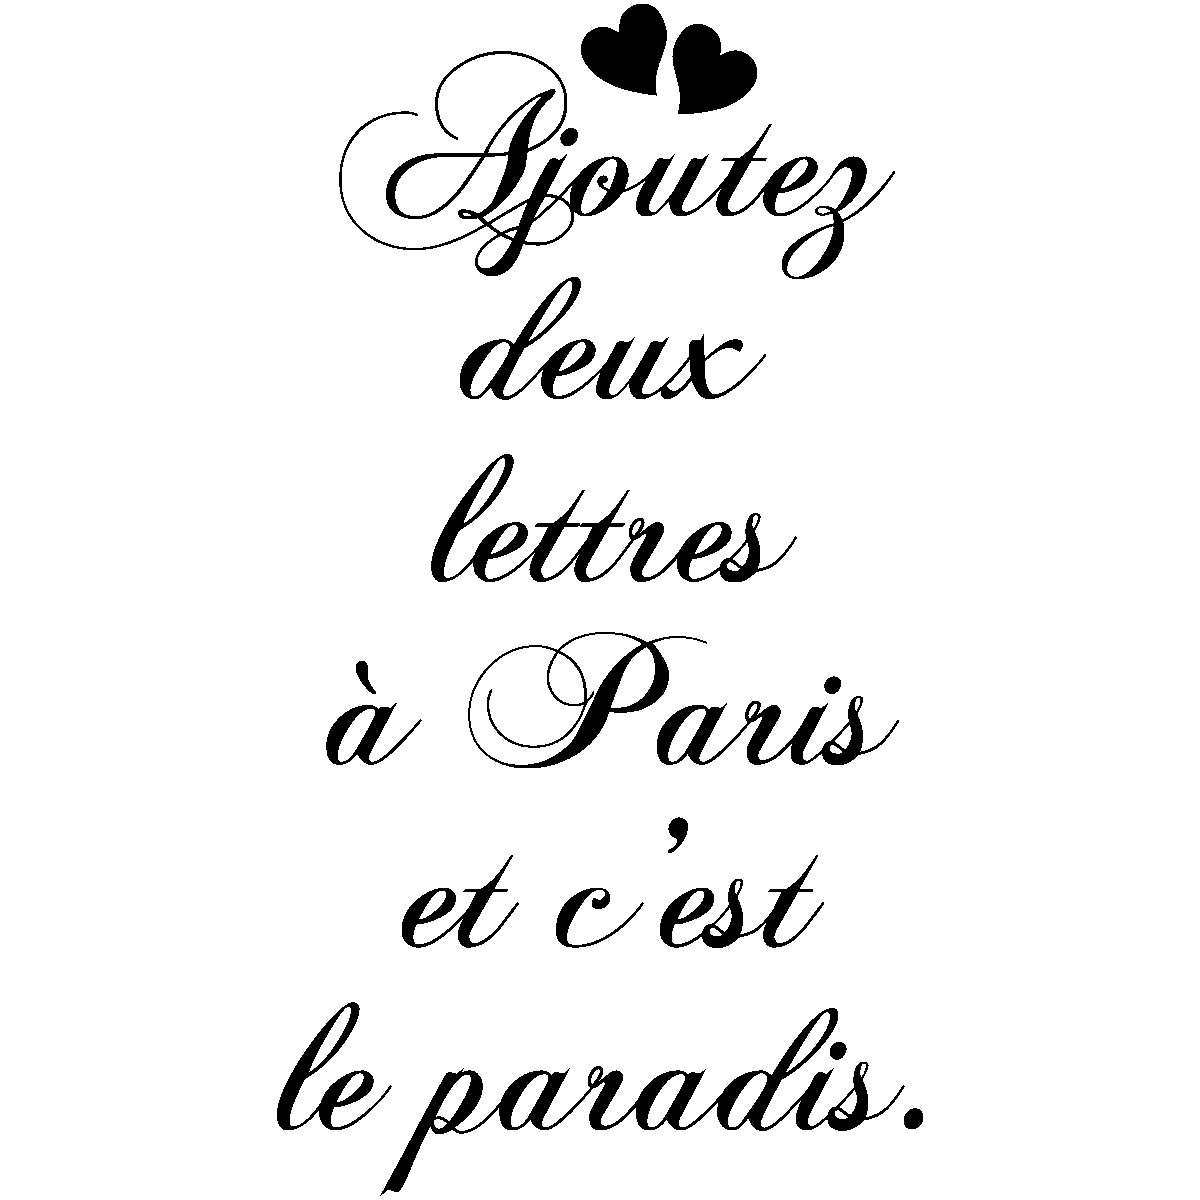 sticker citation ajoutez deux lettres paris stickers villes et voyages paris ambiance. Black Bedroom Furniture Sets. Home Design Ideas